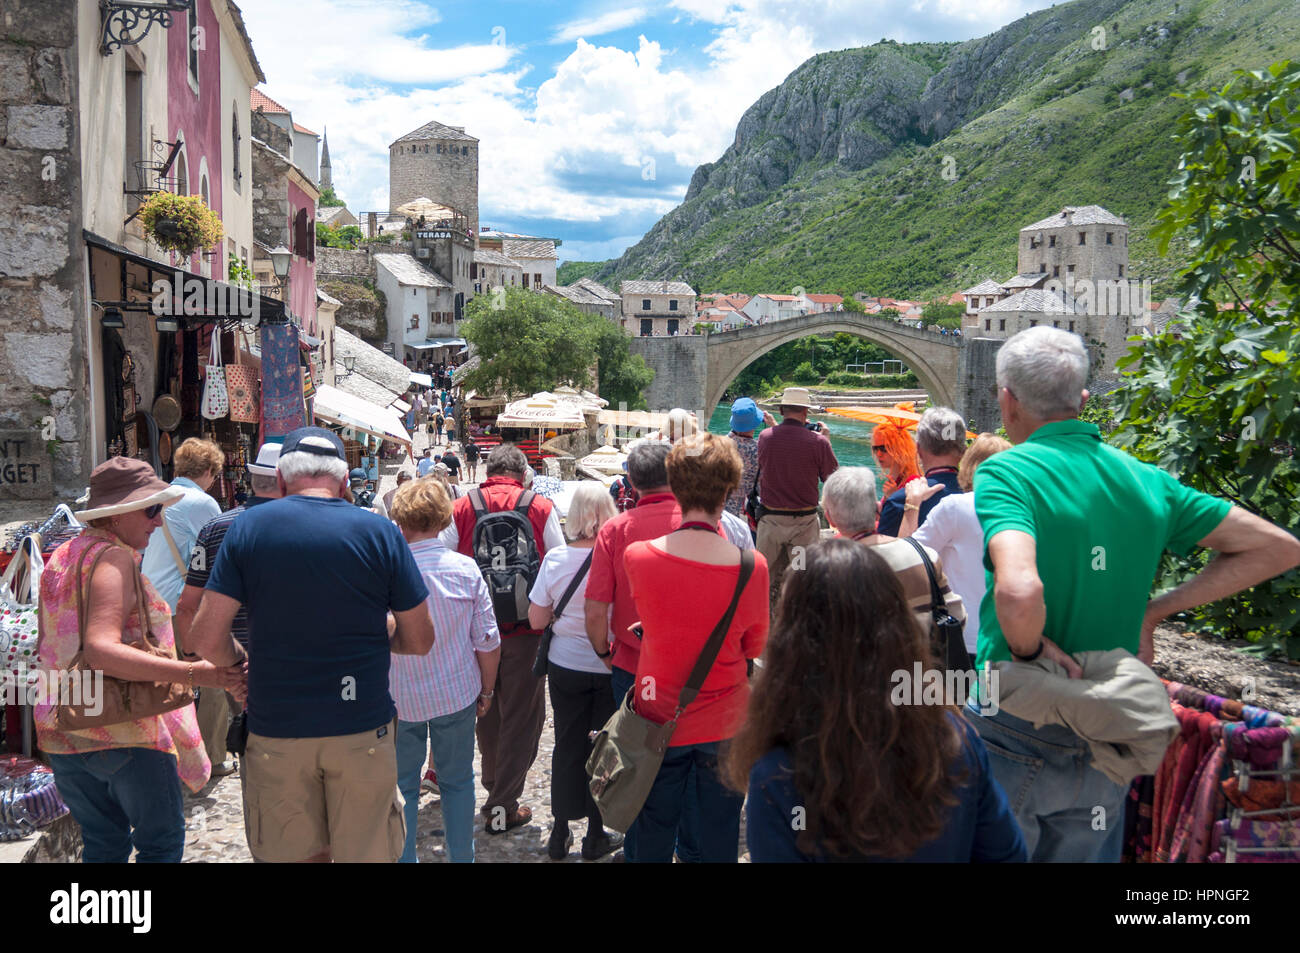 Tourists in Mostar, Bosnia Herzegovina. Looking at Stari Most old bridge in the town - Stock Image